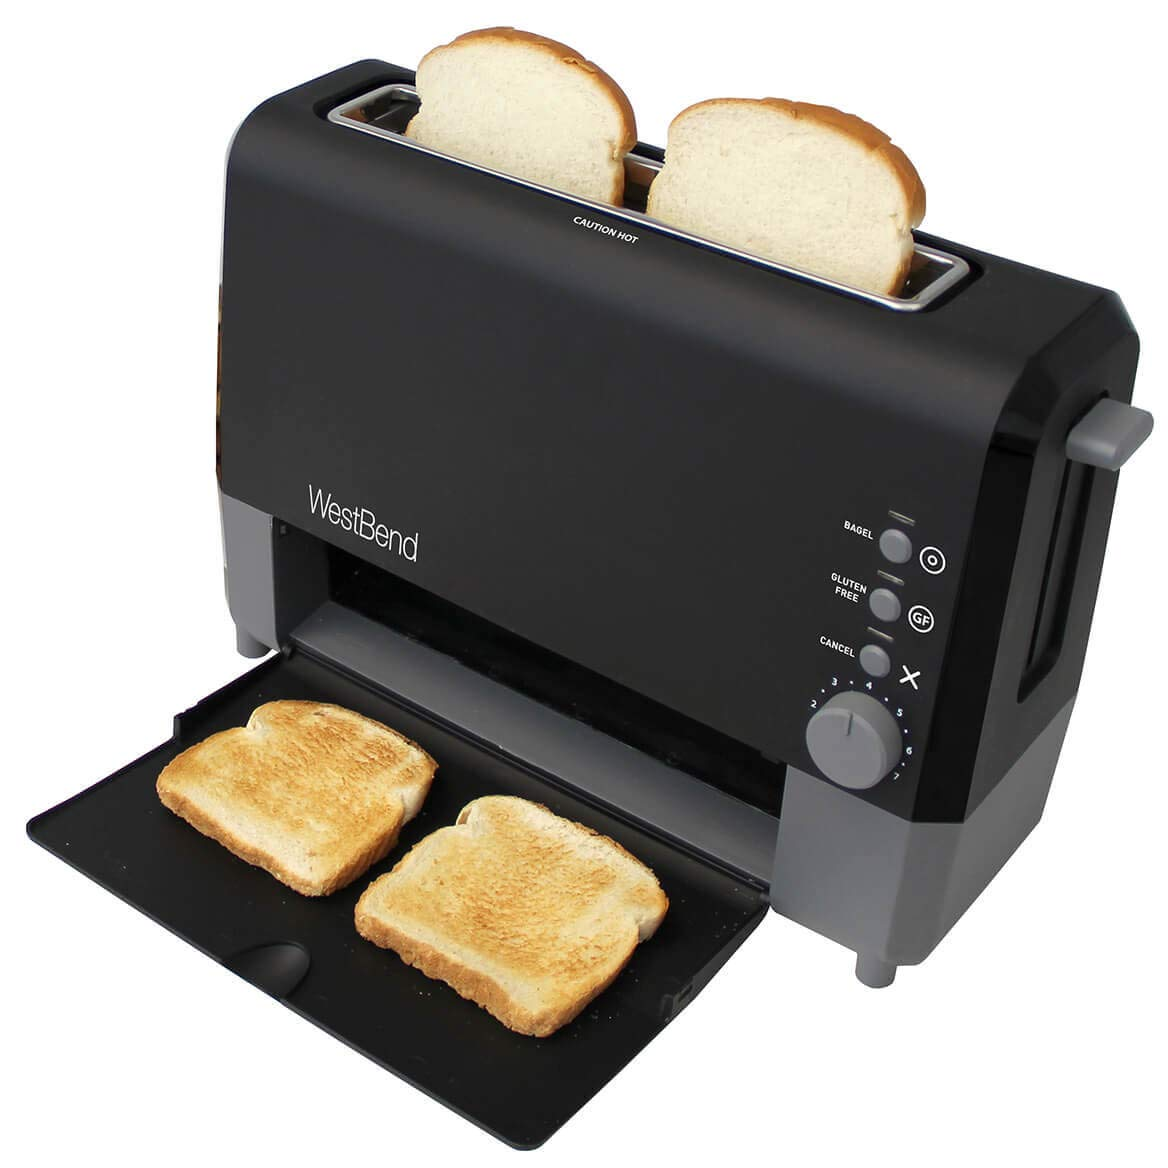 West Bend 77224 Quik Serve Slide Through Wide Slot Toaster with Cool Touch Exterior and Removable Crumb Tray, 2-Slice, Black by West Bend